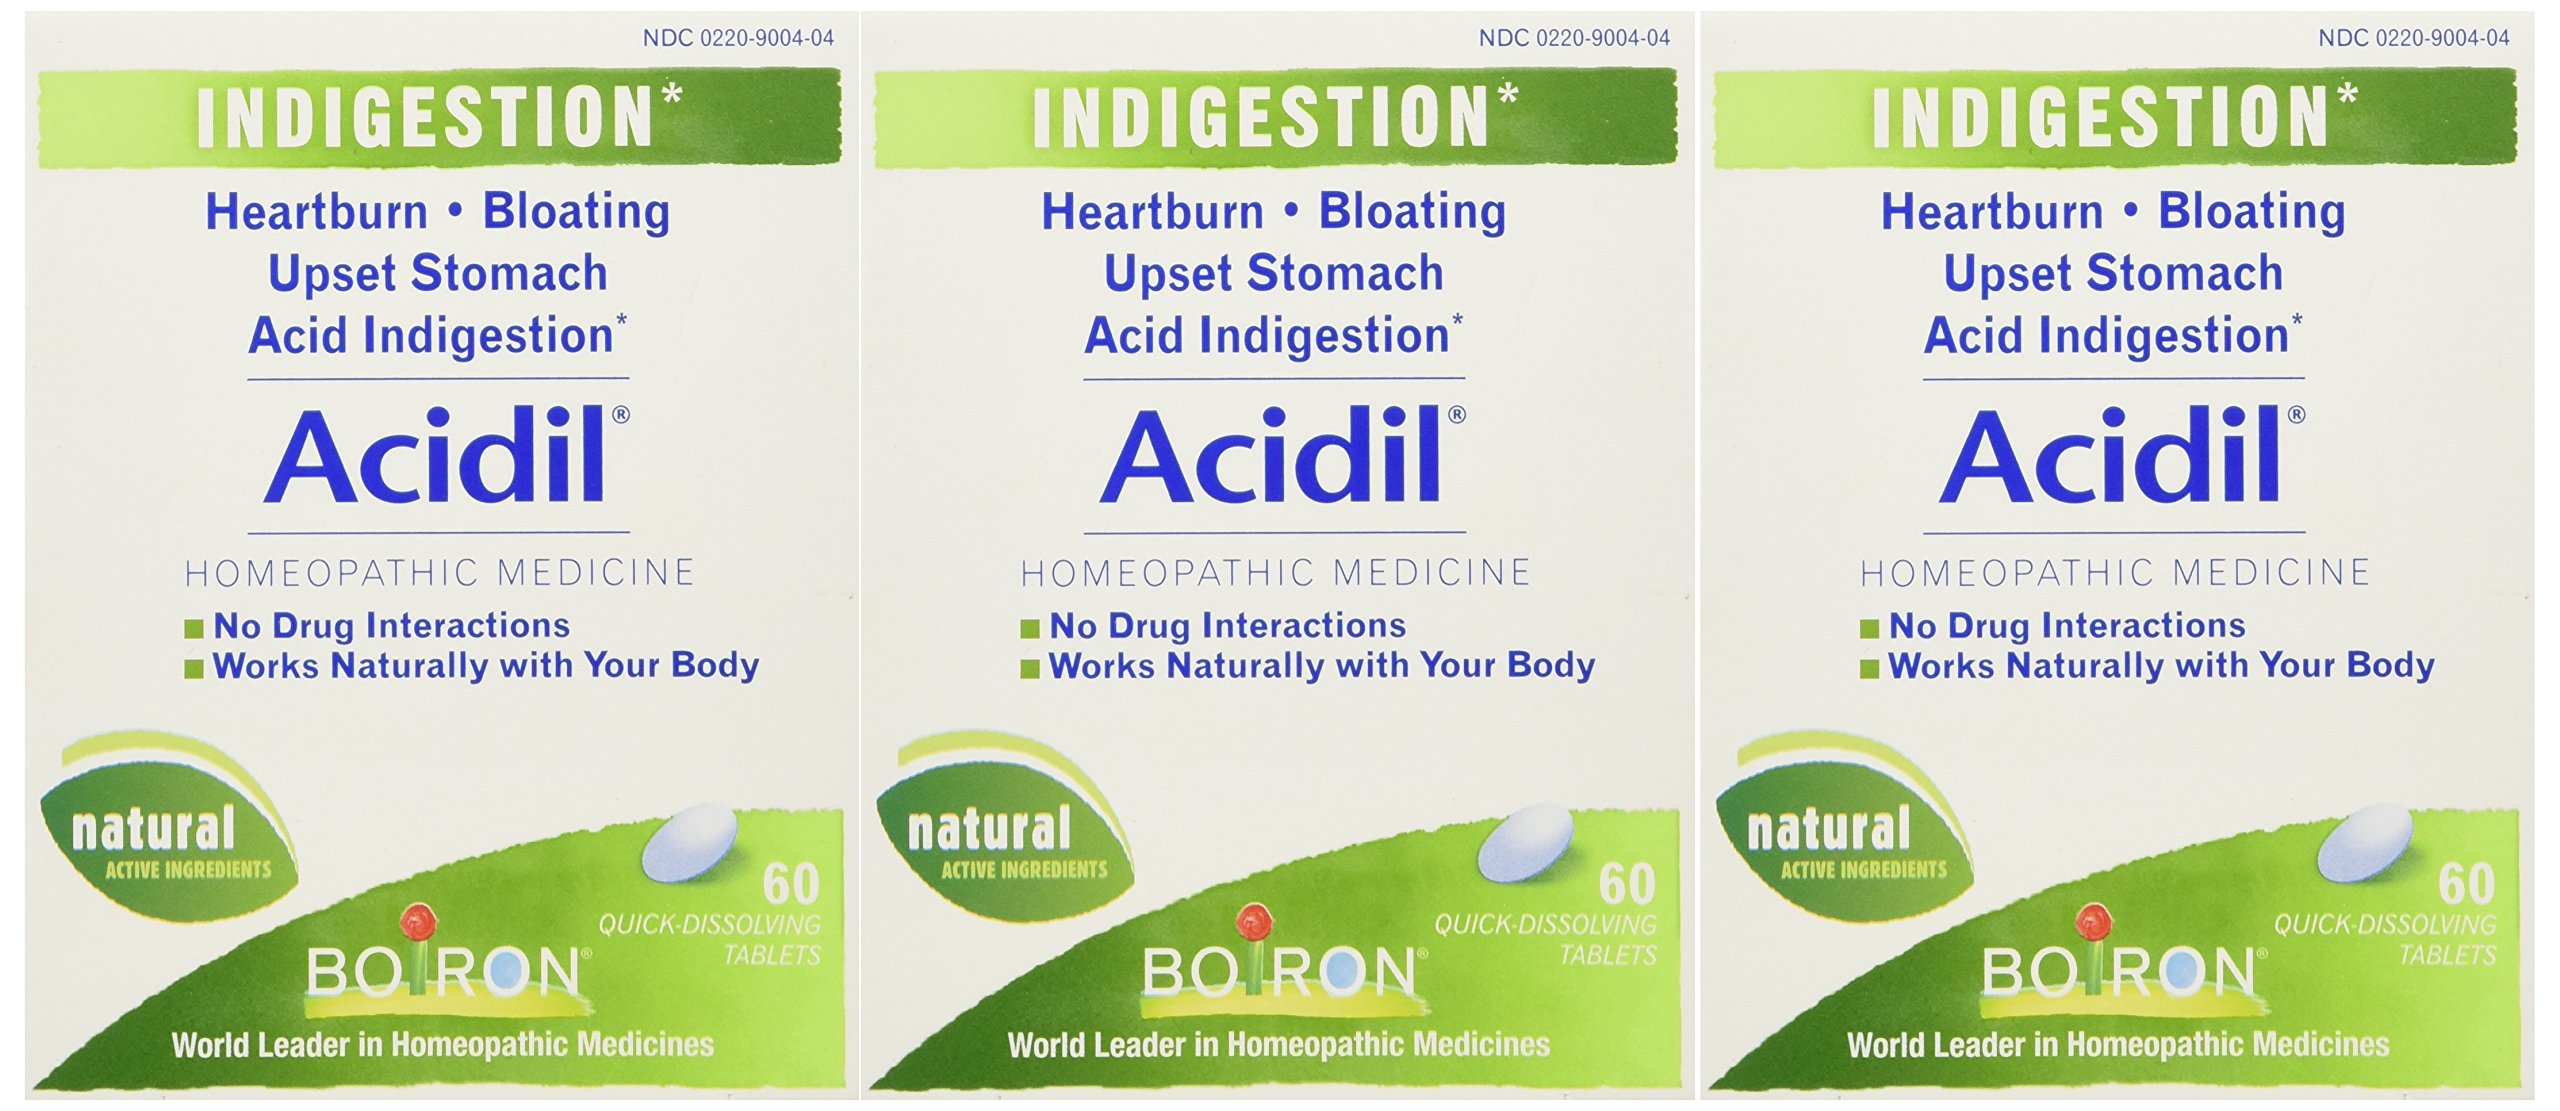 Boiron Acidil, 60 Tablets (Pack of 3), Homeopathic Medicine for Indigestion by Boiron